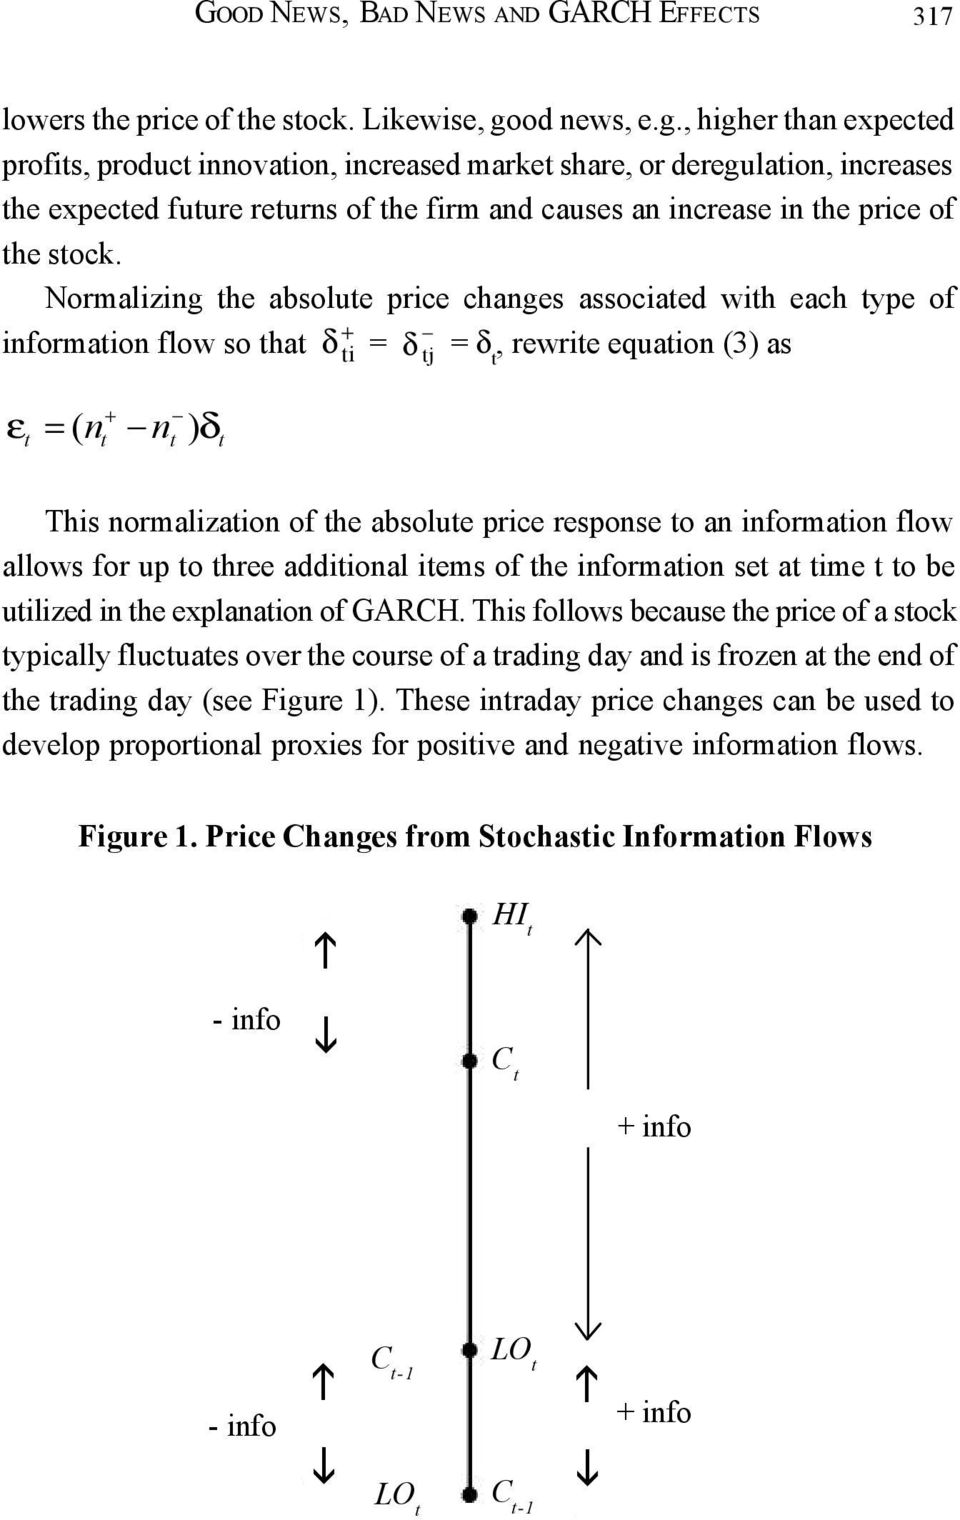 Normalizing he absolue price changes associaed wih each ype of informaion flow so ha δ i = δ j = δ, rewrie equaion (3) as ε = ( n n ) δ This normalizaion of he absolue price response o an informaion